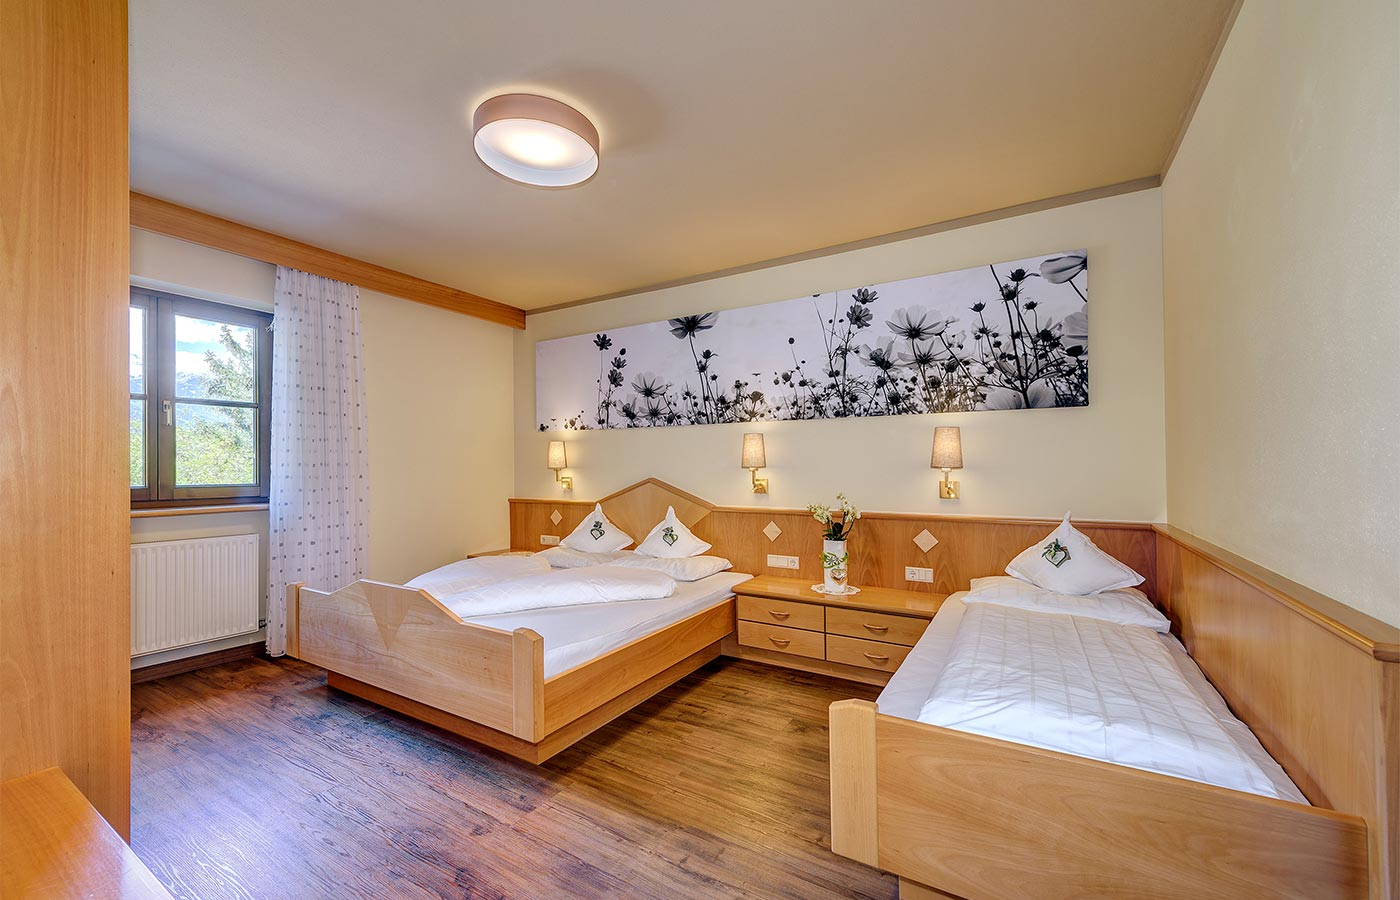 Double room for 2 guests furnished in wood